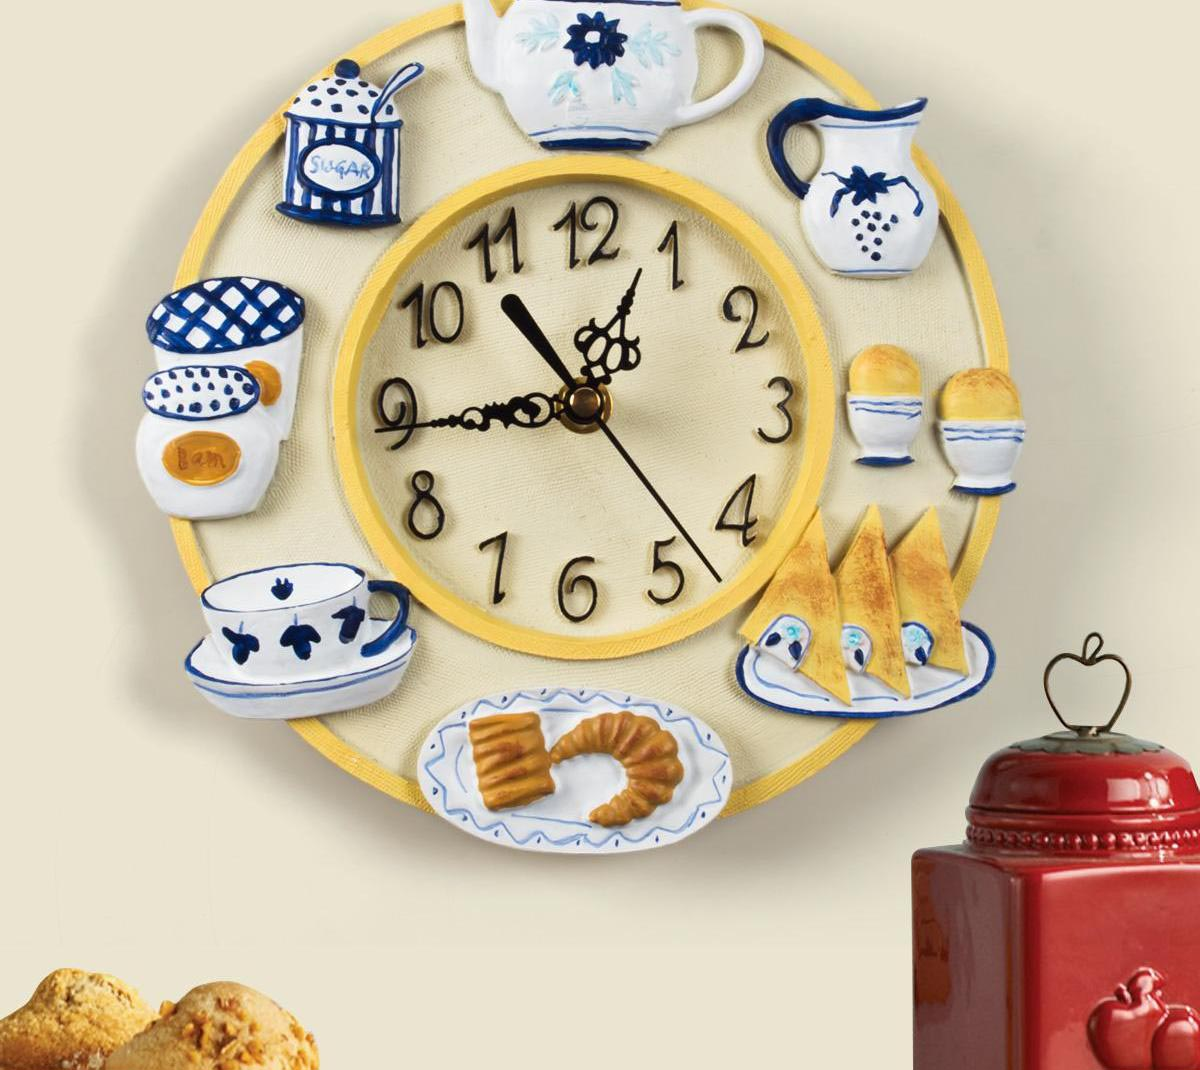 Decorative kitchen wall clocks best decor things decorative kitchen wall clocks amipublicfo Image collections